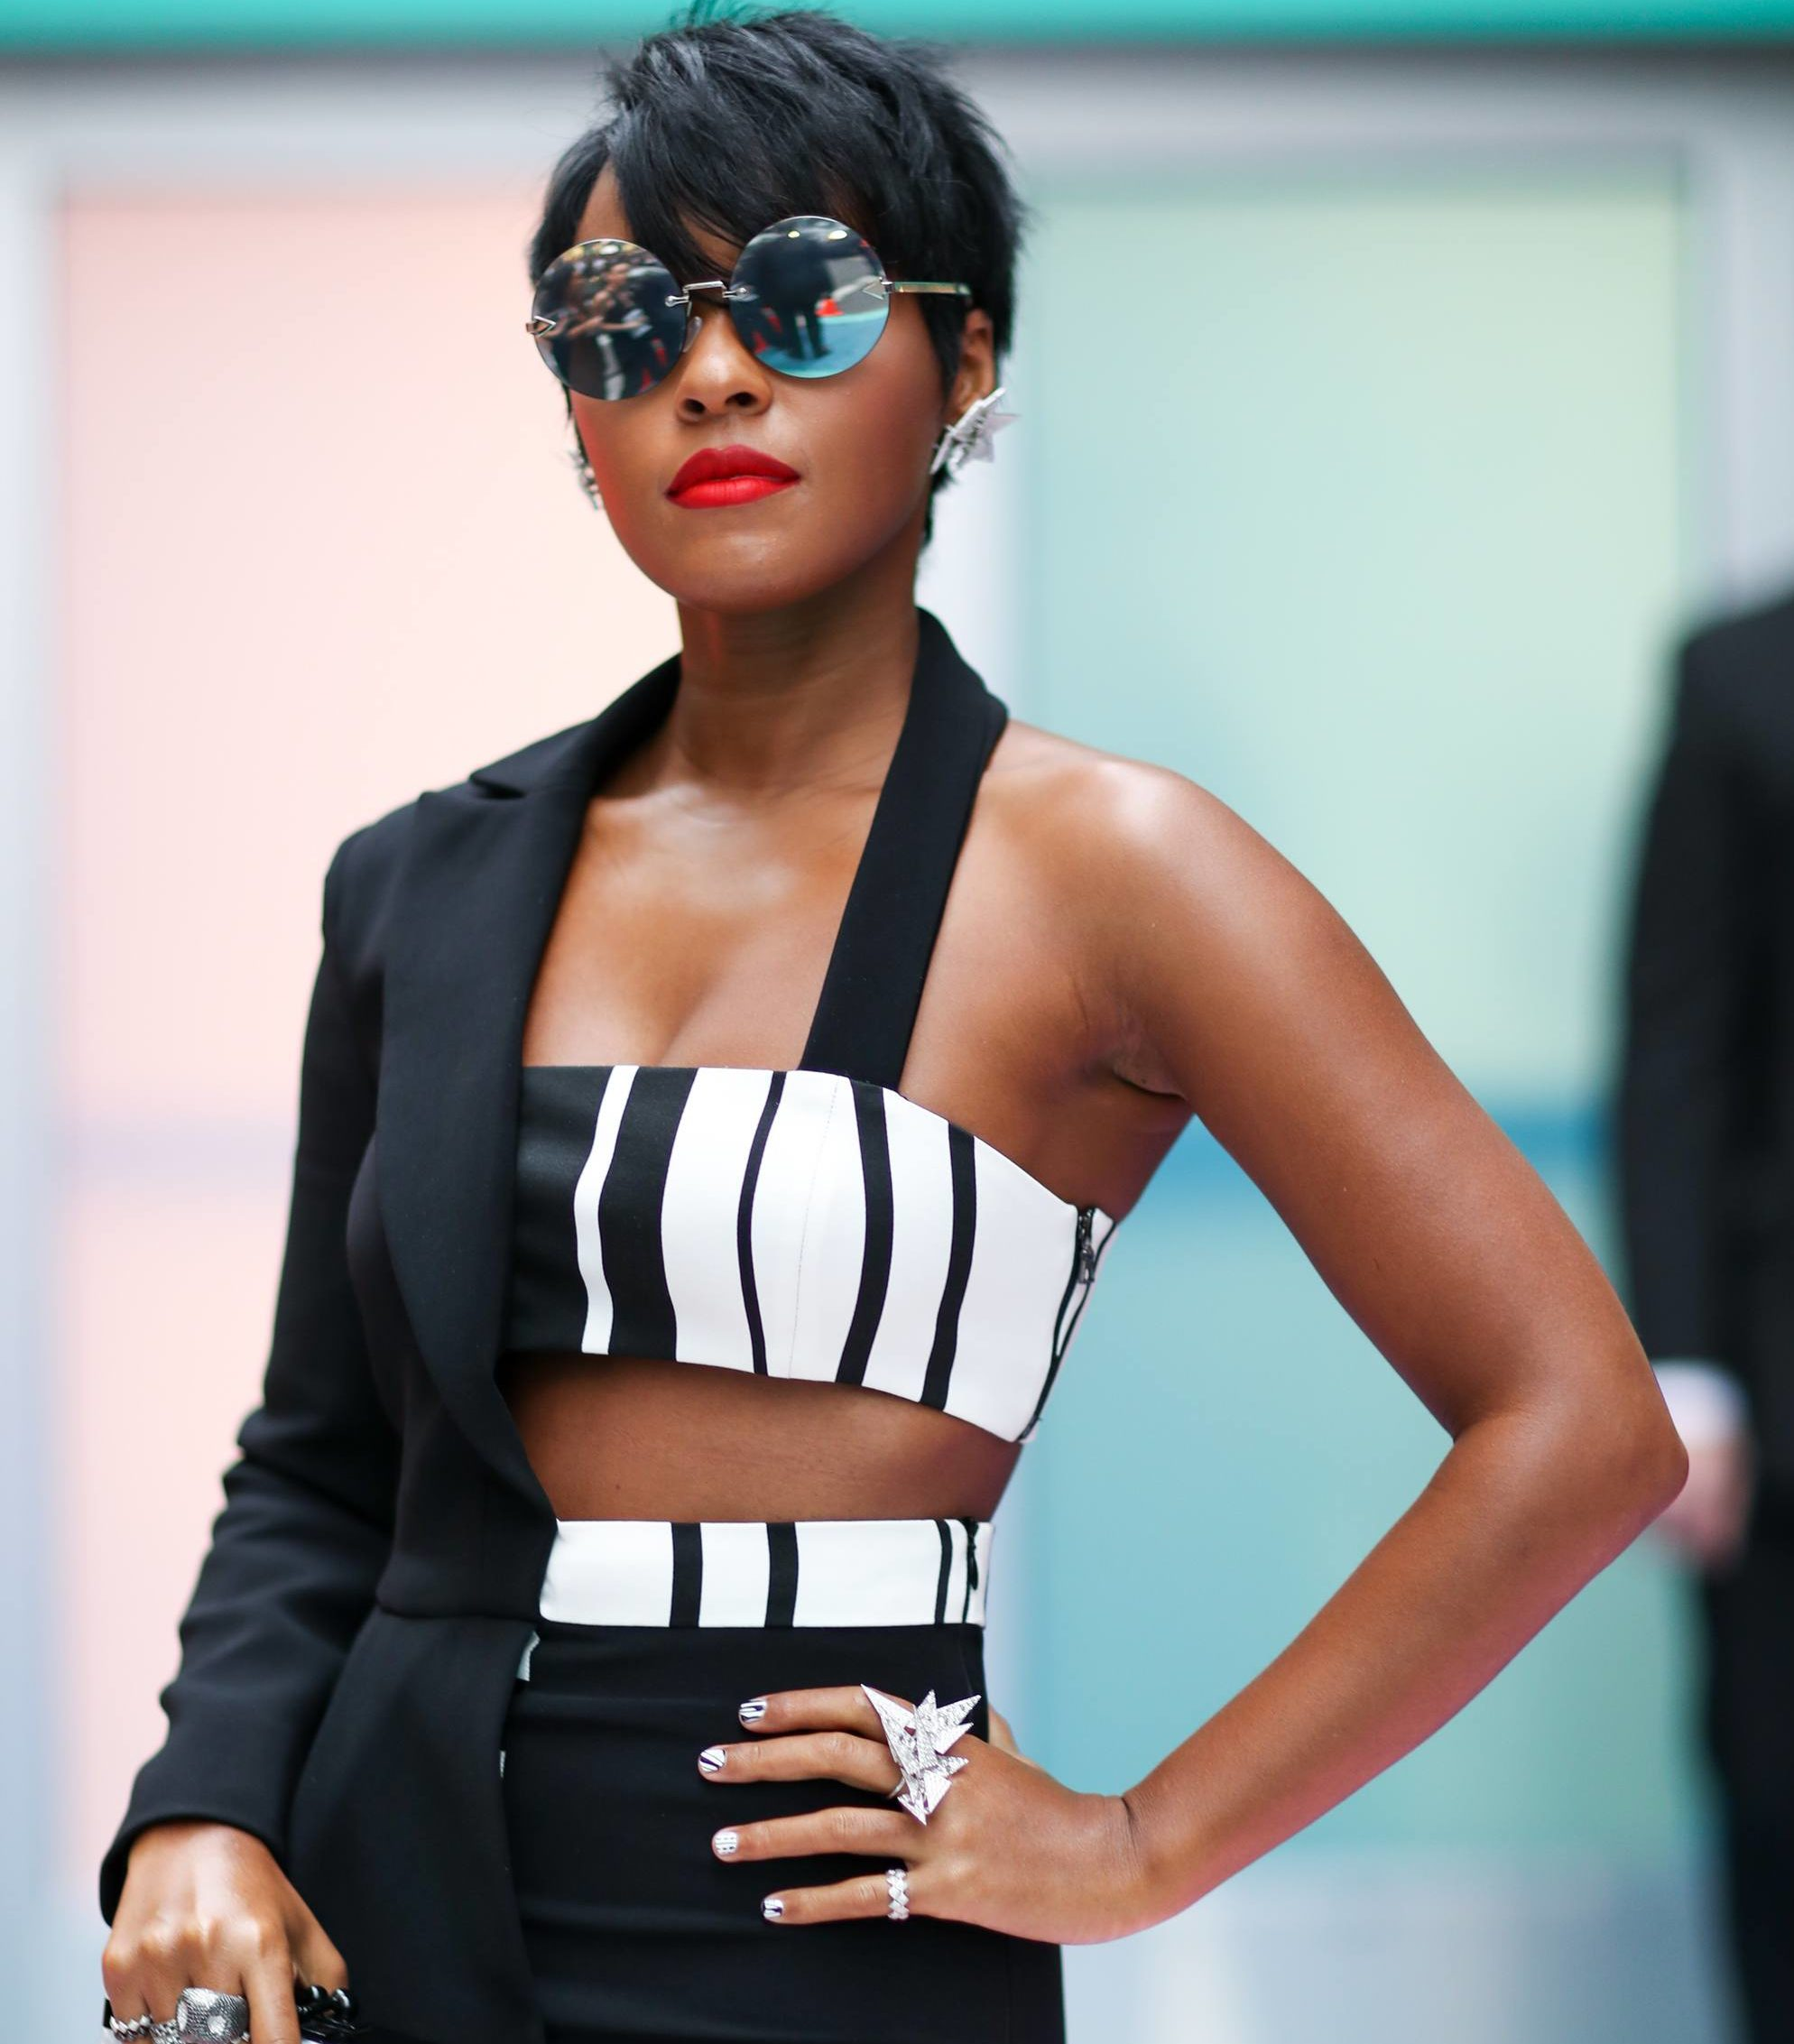 black pixie hairstyles: close up shot of janelle monae with black pixie haircut, wearing sunglasses, a red lipstick and a designer suit and top